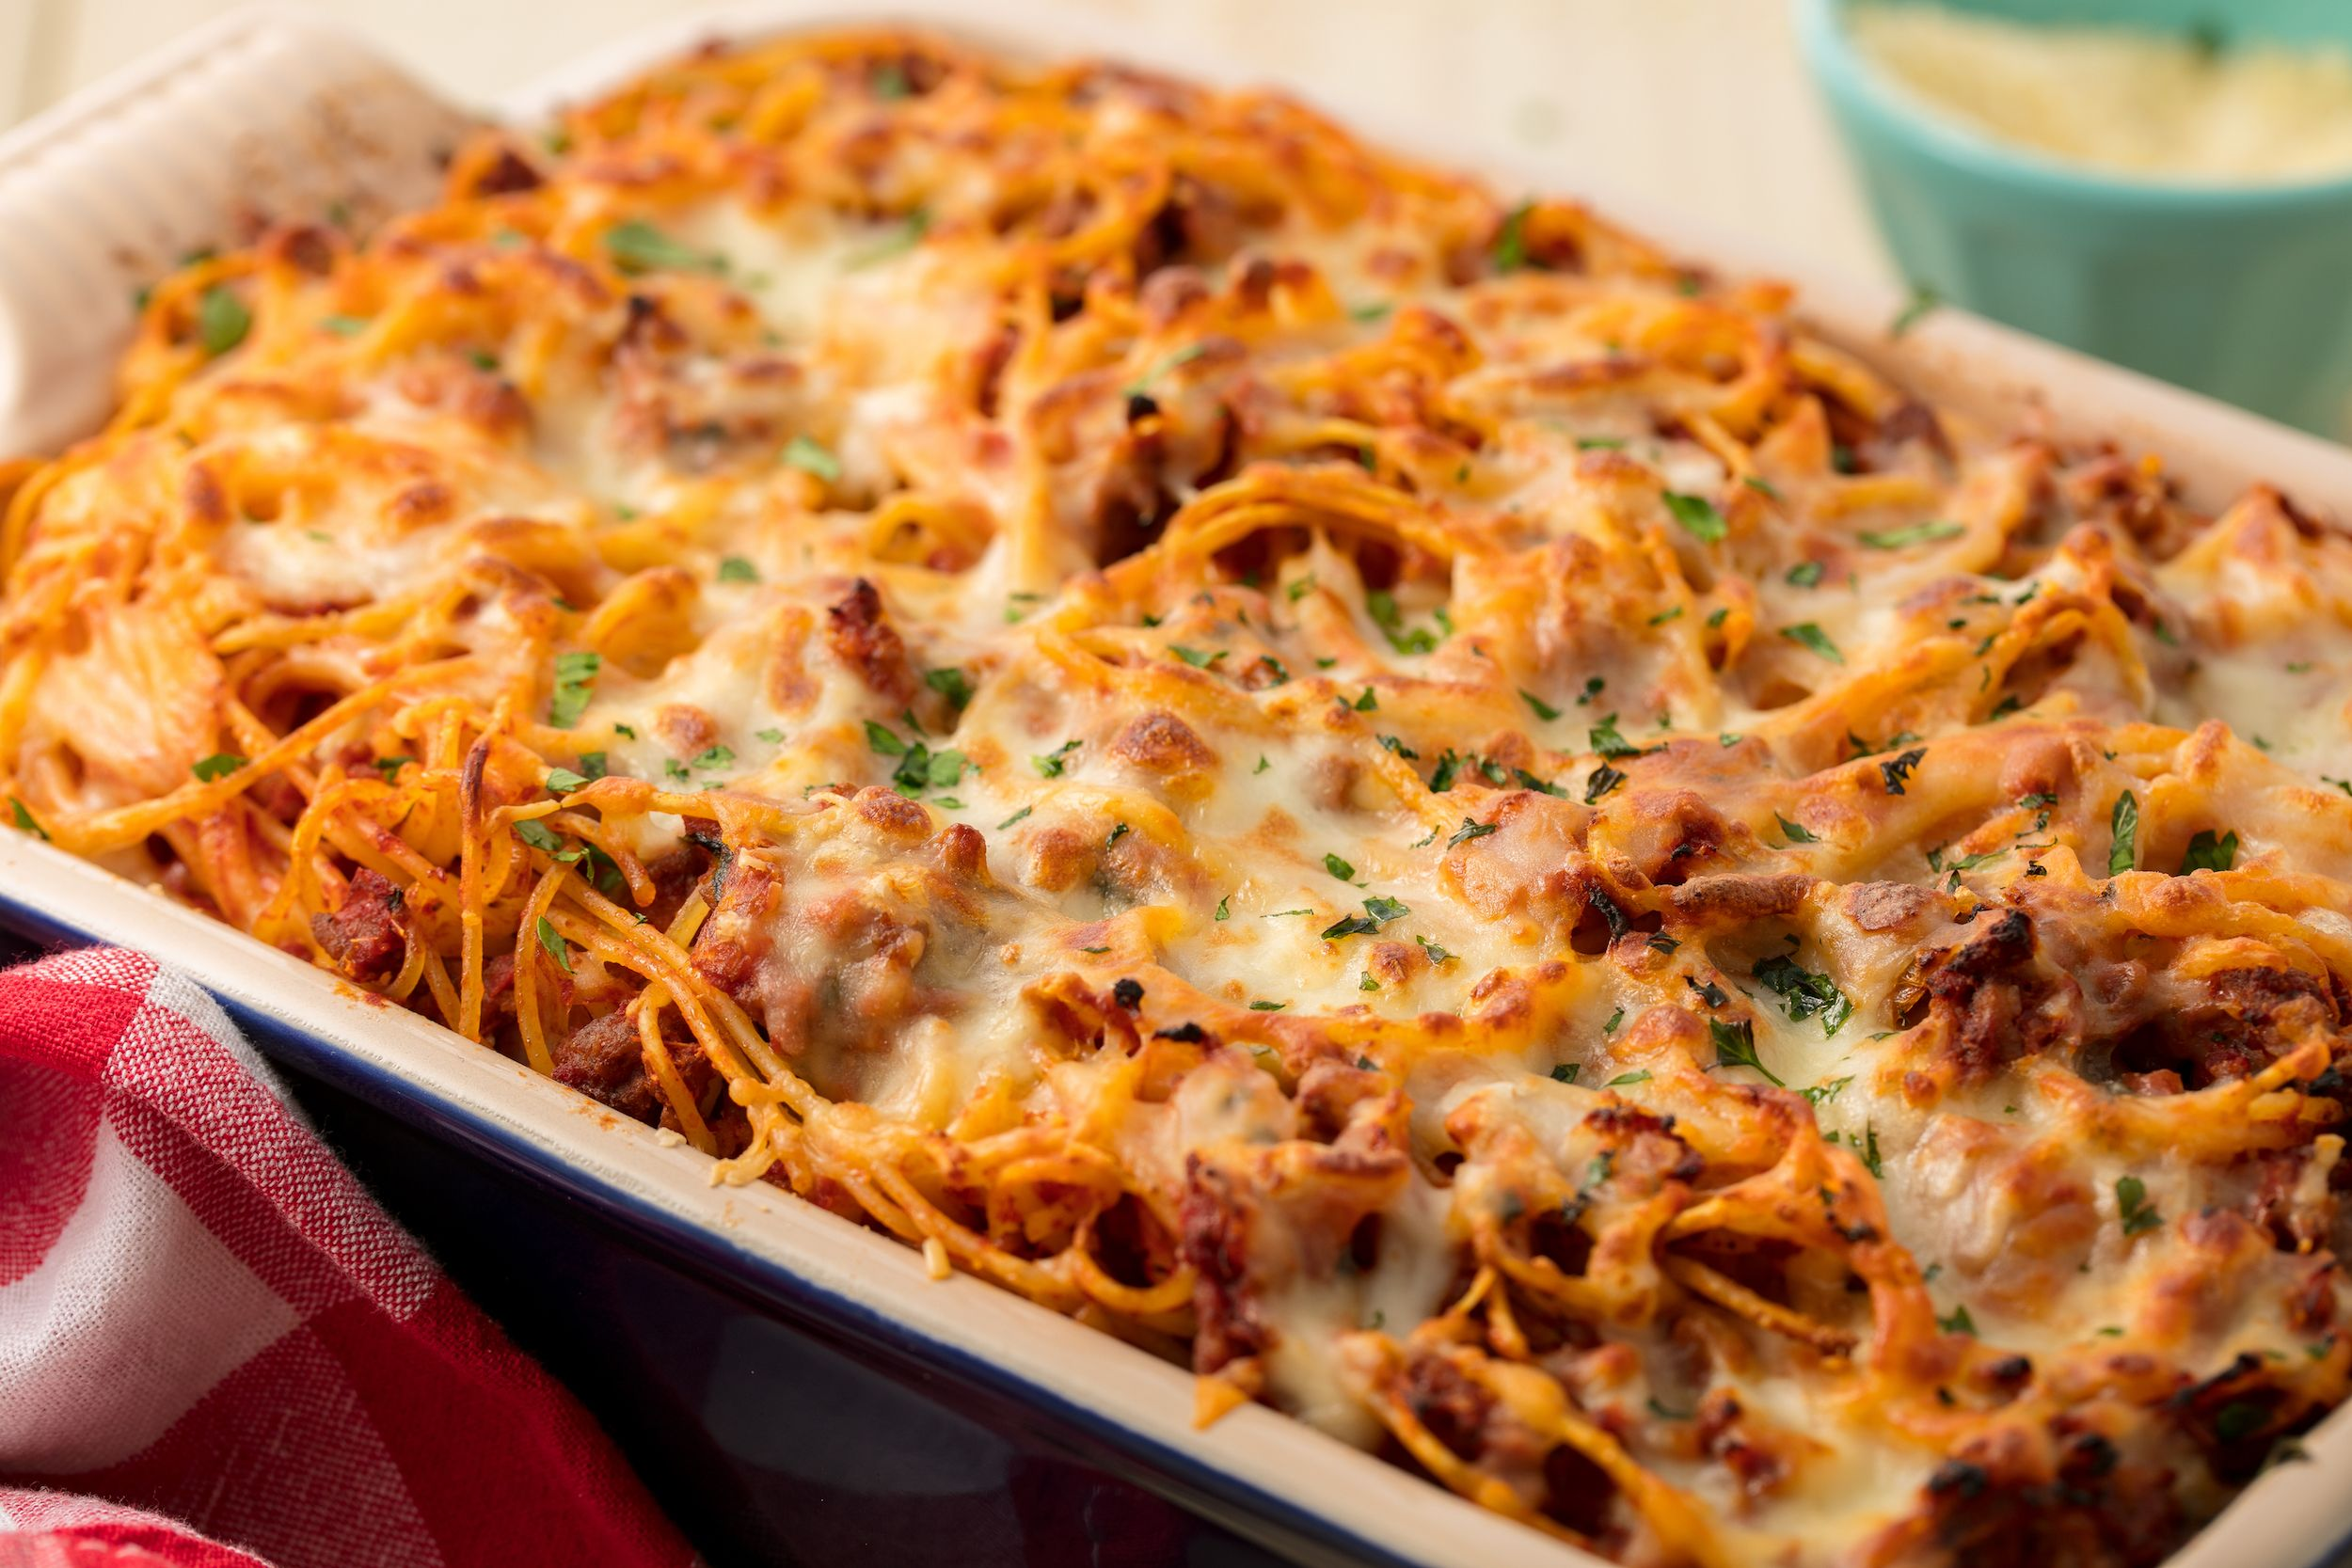 How to Make a Pasta Bake recommendations